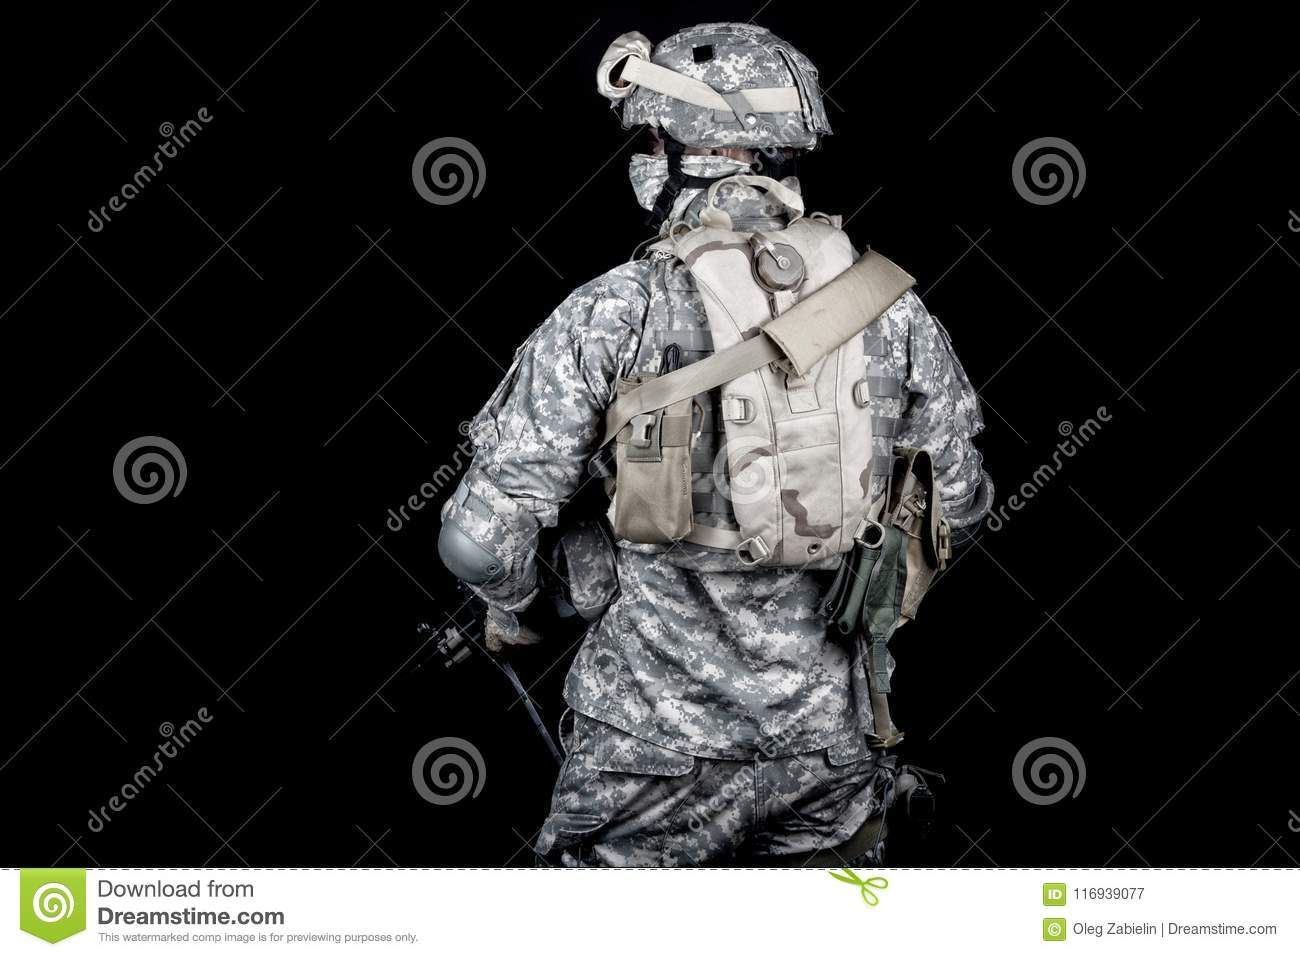 ecb3ebeab97 Army Soldier Equipped For Mission In Desert Area Stock Image - Image ...